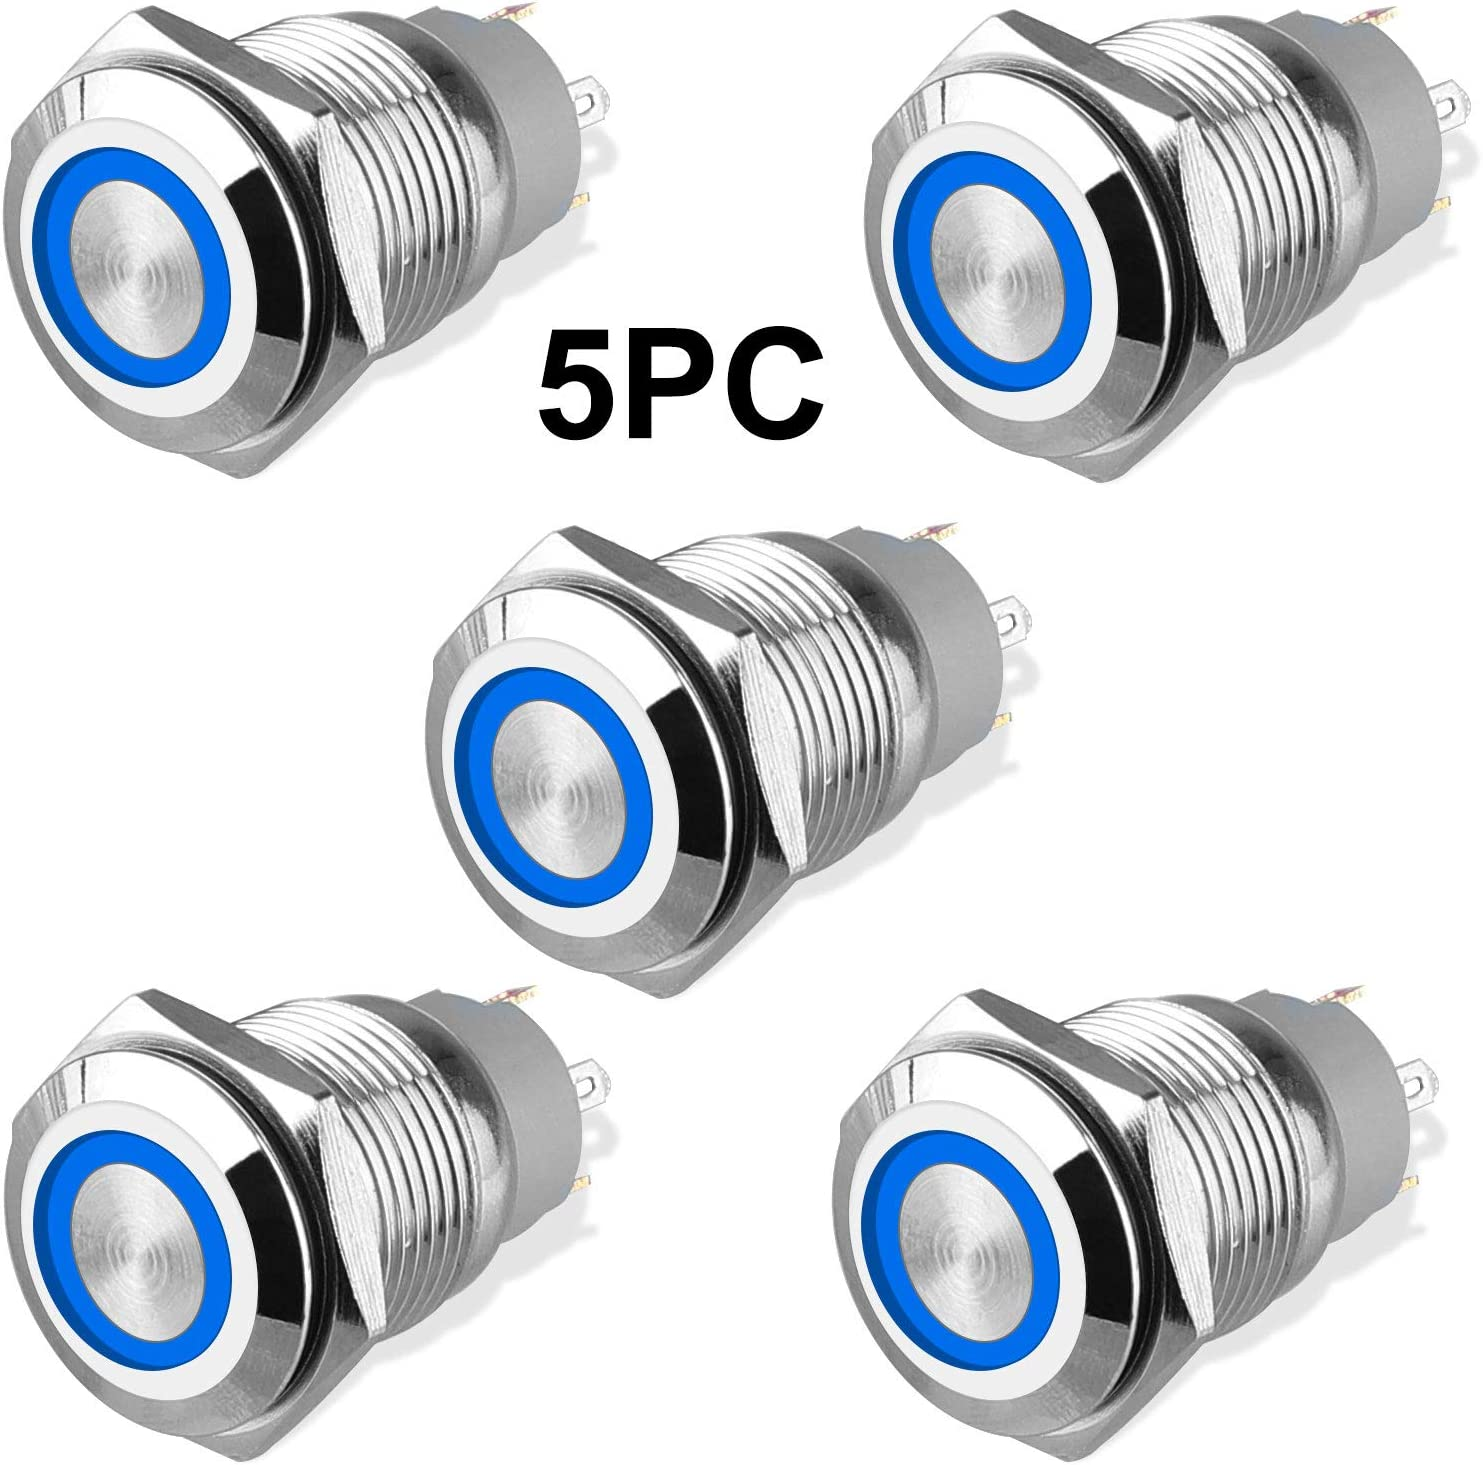 5Pcs 16mm Metal Latching Push Button Switch with Blue LED Light DC 12V/24V, LINKSTYLE ON/OFF 4 Pin Self-Locking Round Waterproof Marine Switch for Car RV Truck Boat SPDT